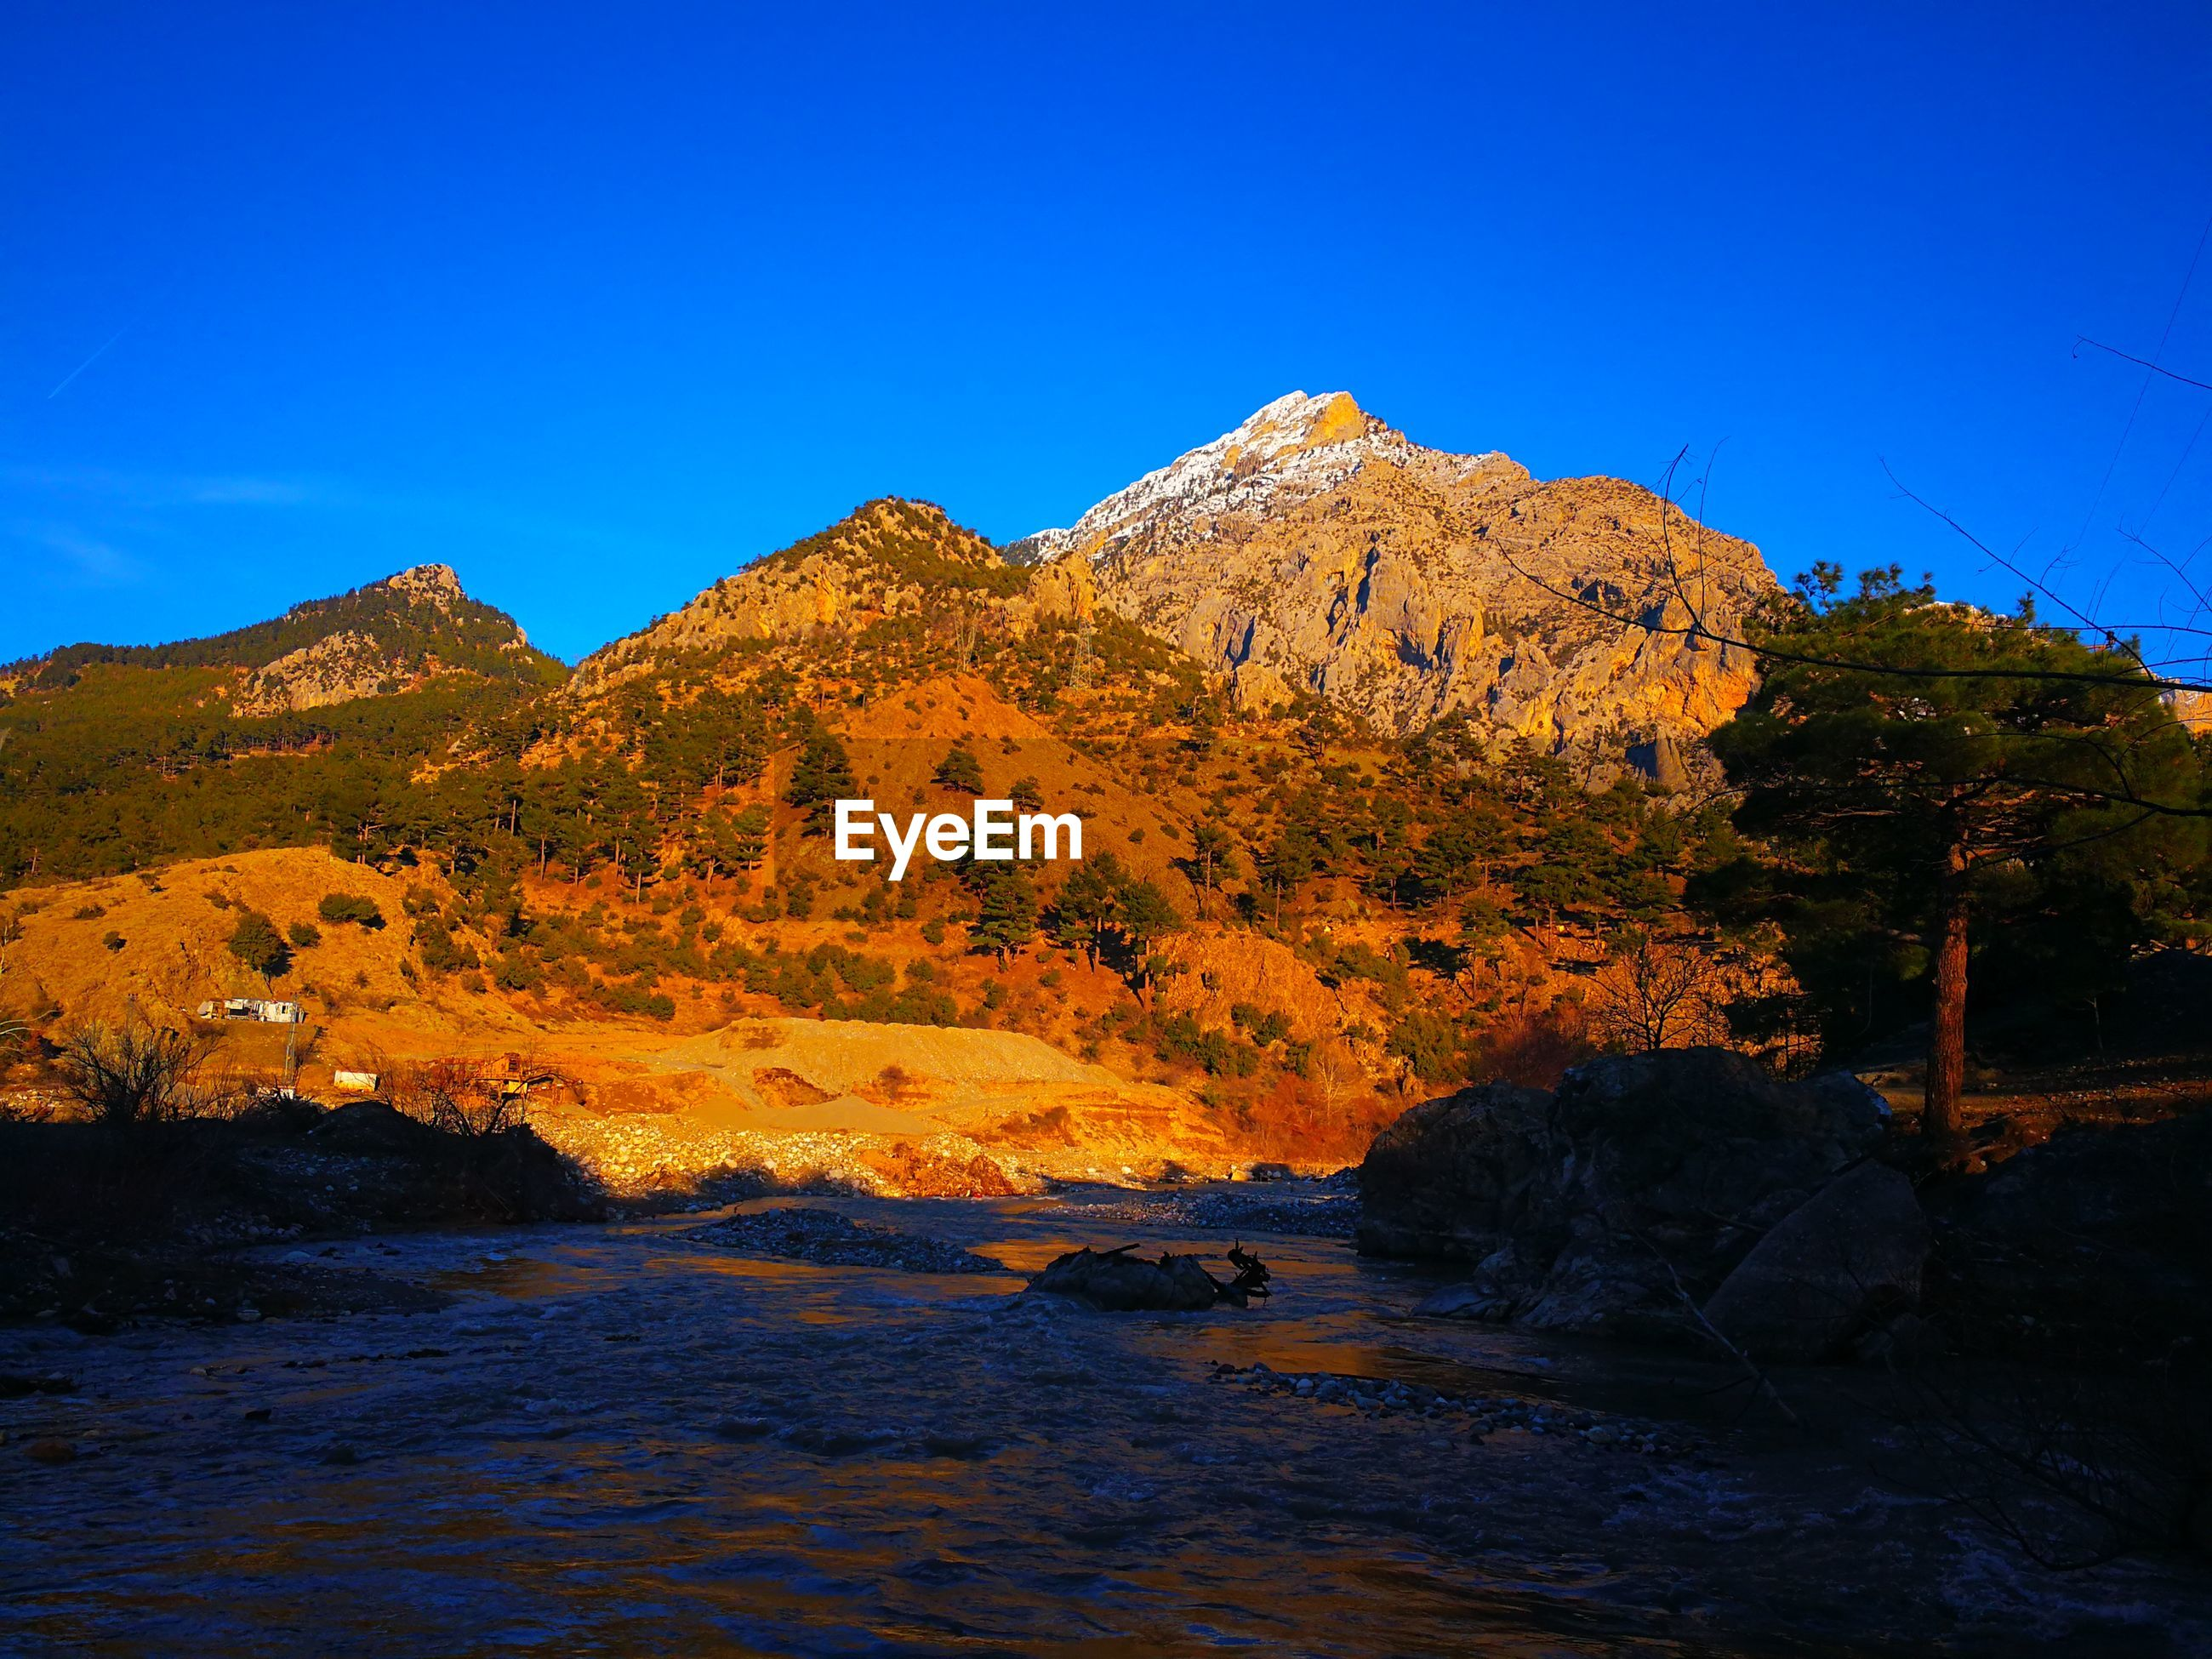 sky, beauty in nature, rock, water, tranquil scene, blue, mountain, tranquility, nature, scenics - nature, rock - object, solid, clear sky, non-urban scene, rock formation, no people, idyllic, land, day, outdoors, formation